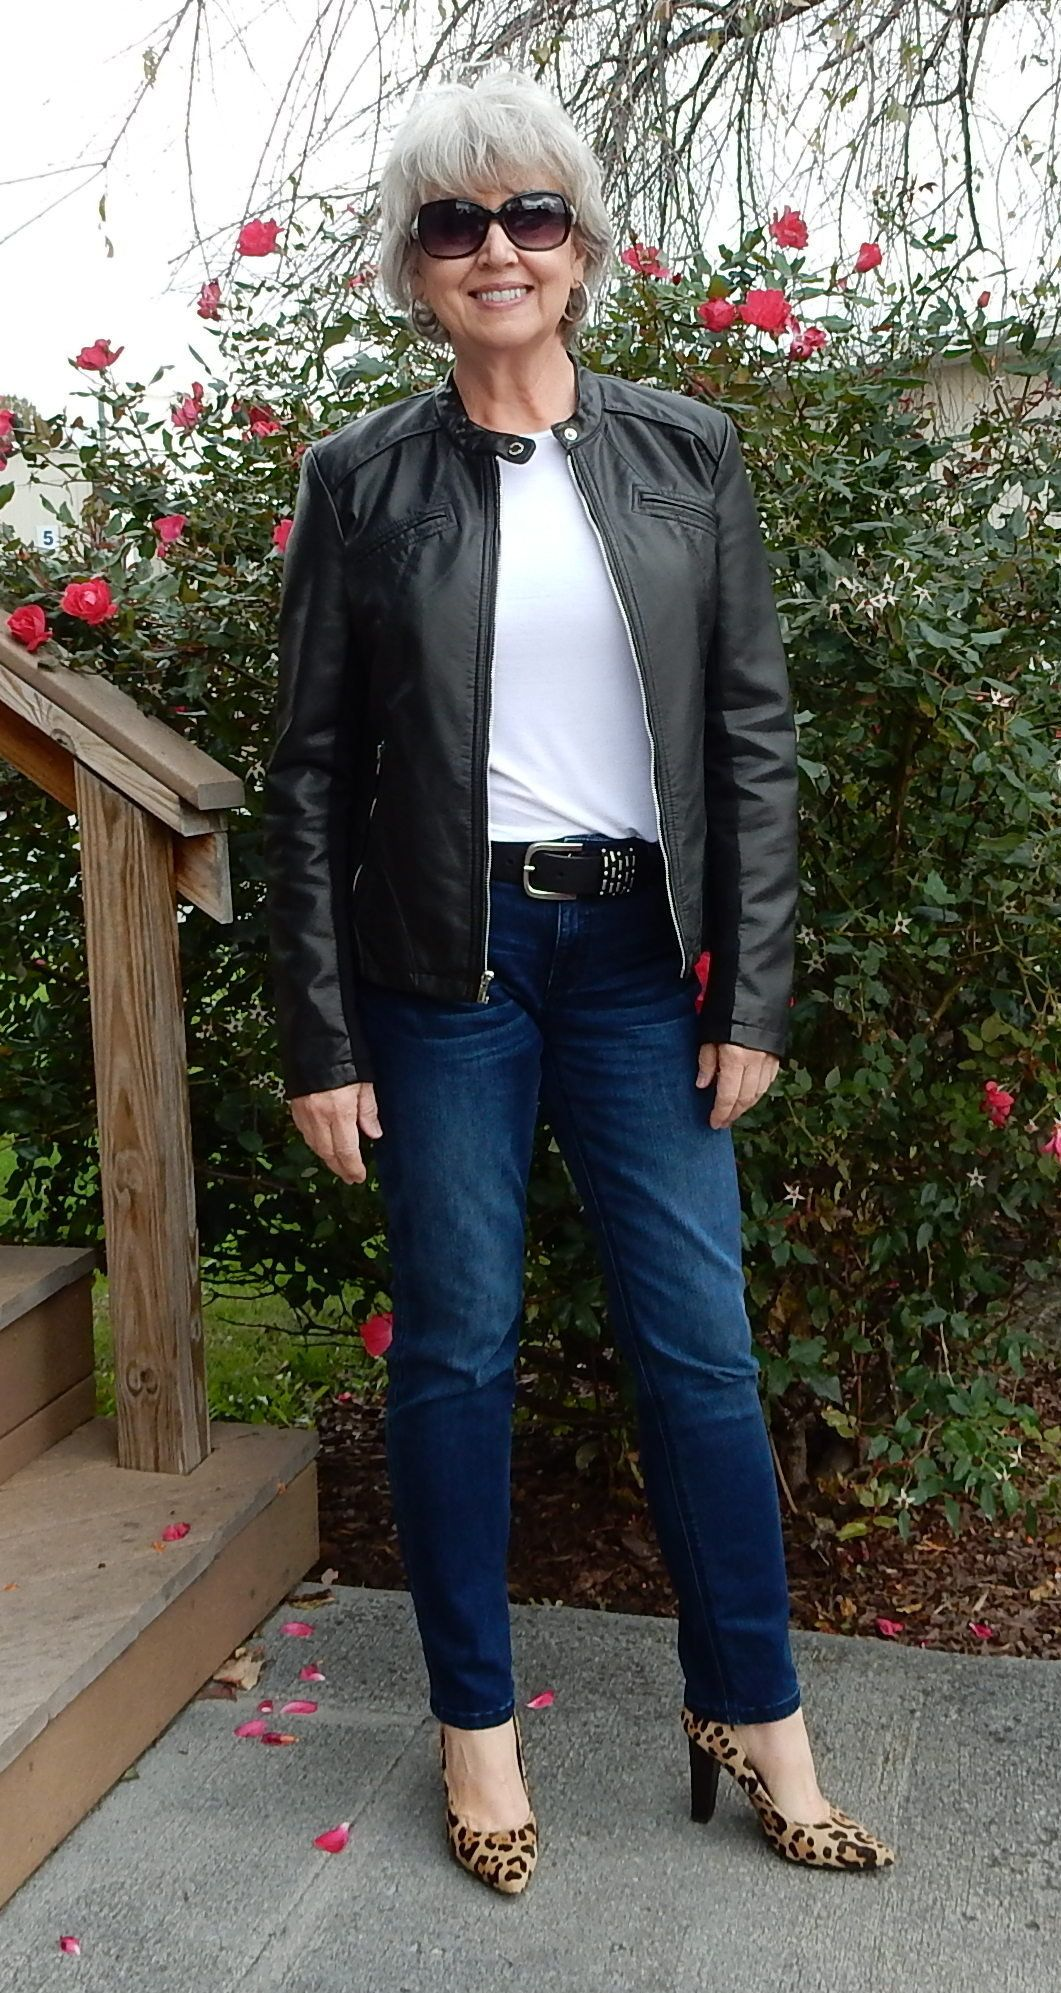 Wearing my Express faux leather jacket today. Womens